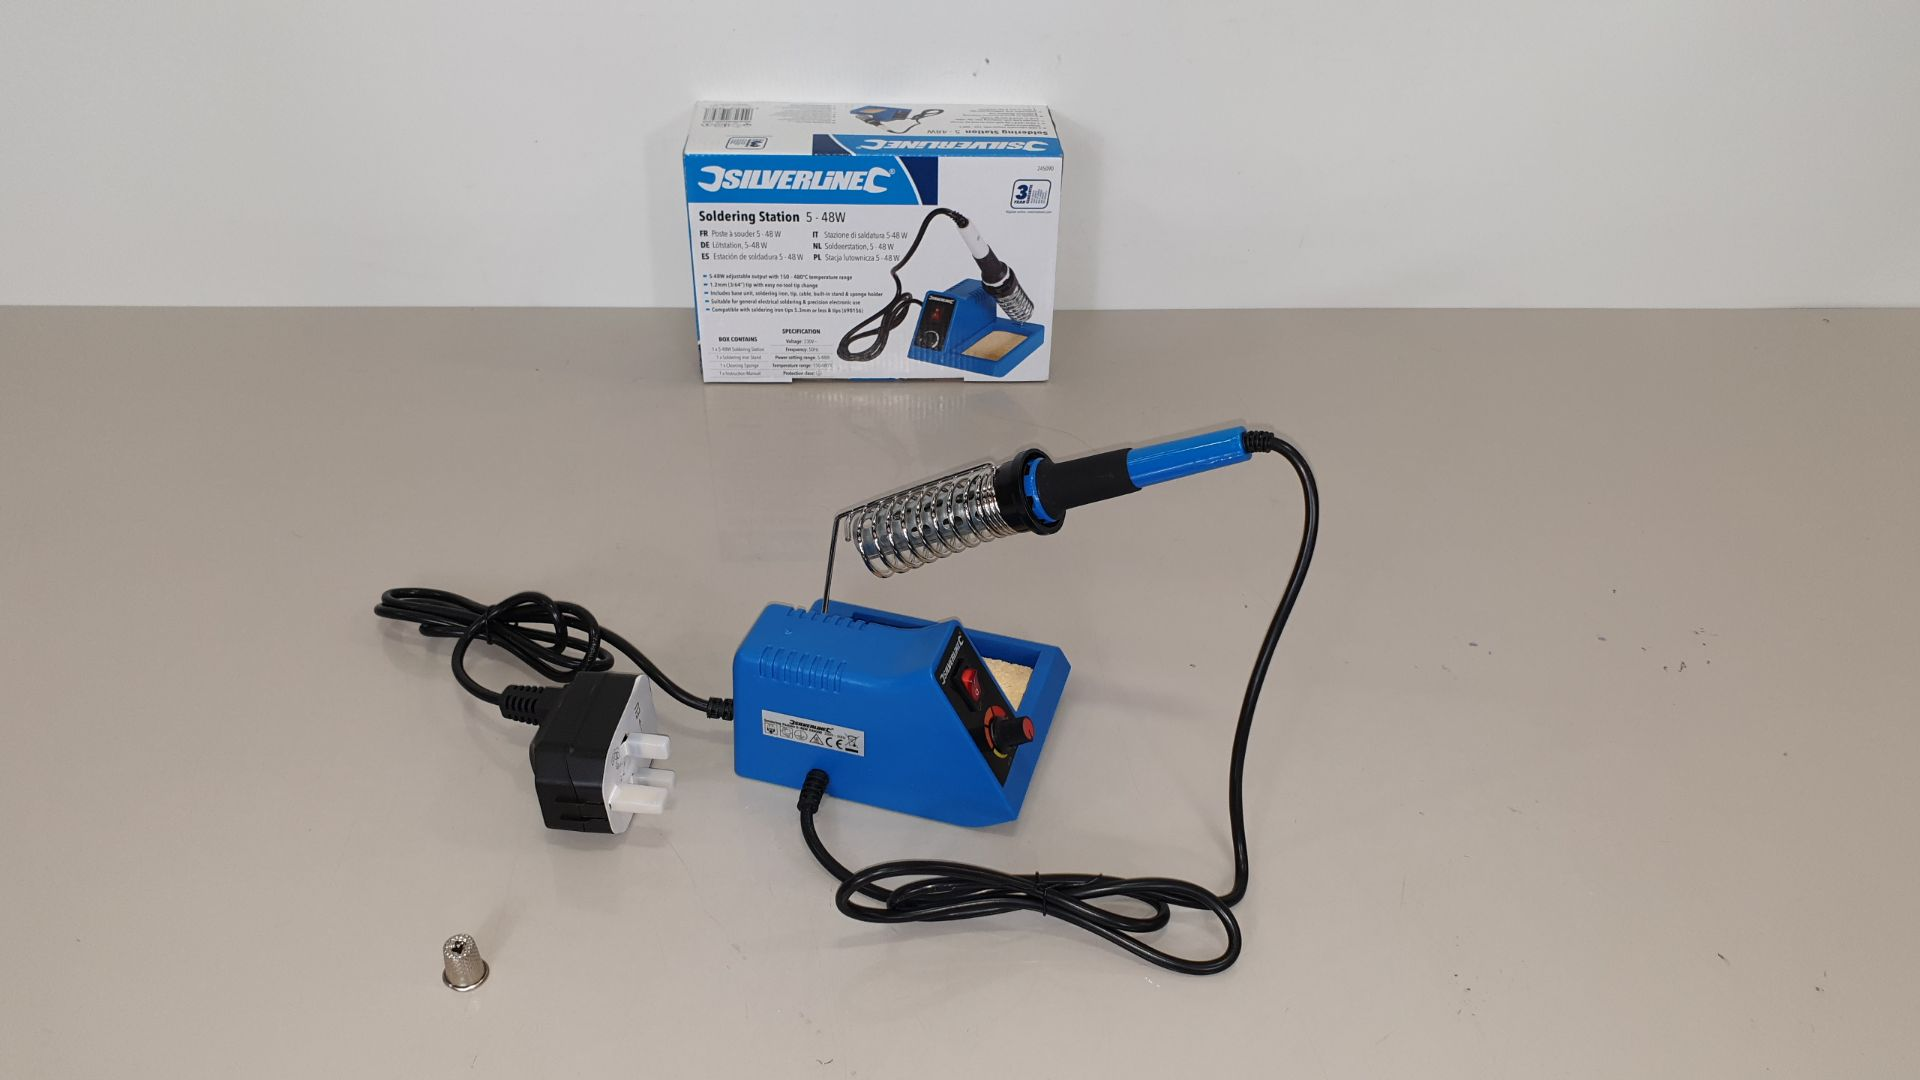 Lot 226 - 20 X BRAND NEW SILVERLINE SOLDERING STATIONS 5-48W (PROD CODE 245090) - TRADE PRICE £31.34 EACH (EXC